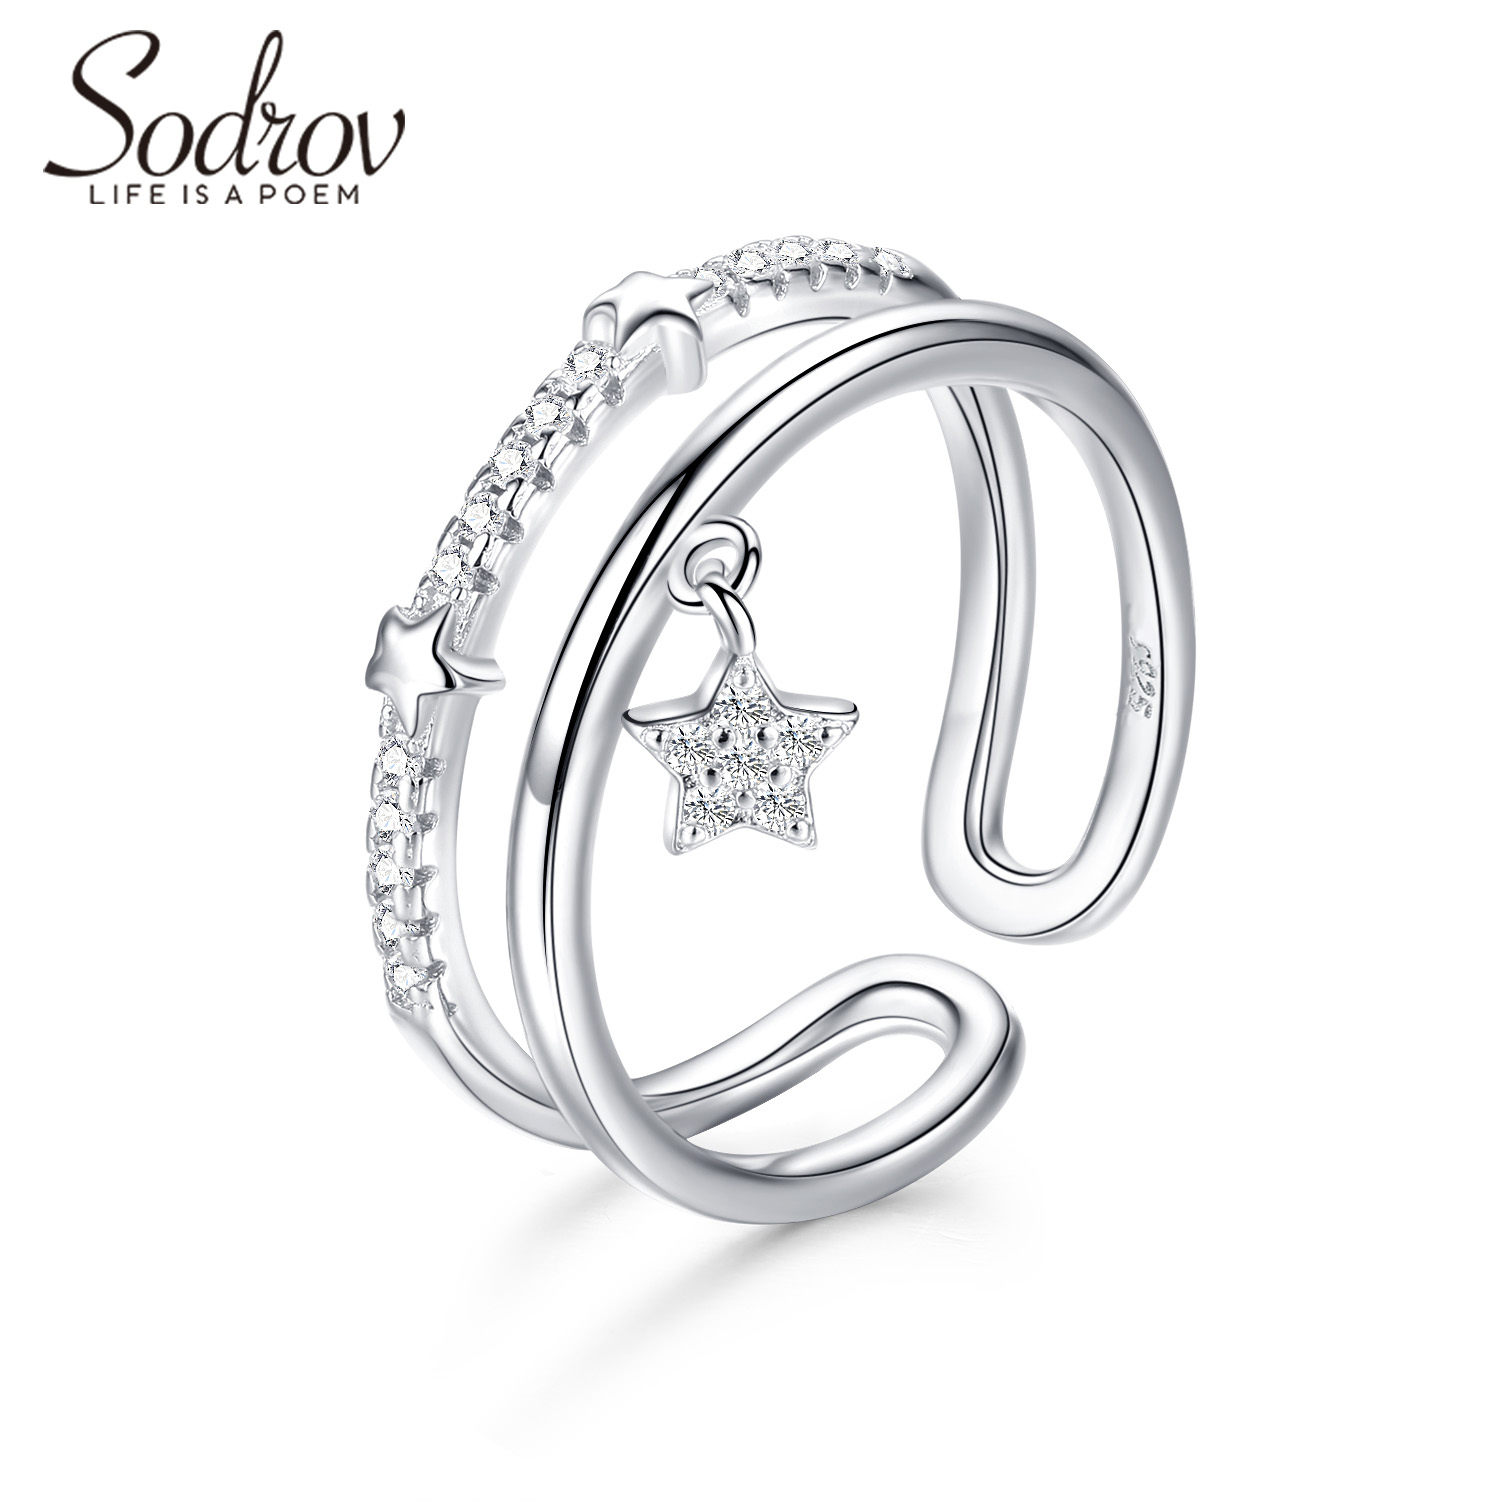 Sodrov Rings Jewelry Star 925 Sterling Silver For Women Zircon Wedding Bands Adjustable Fine Accessories